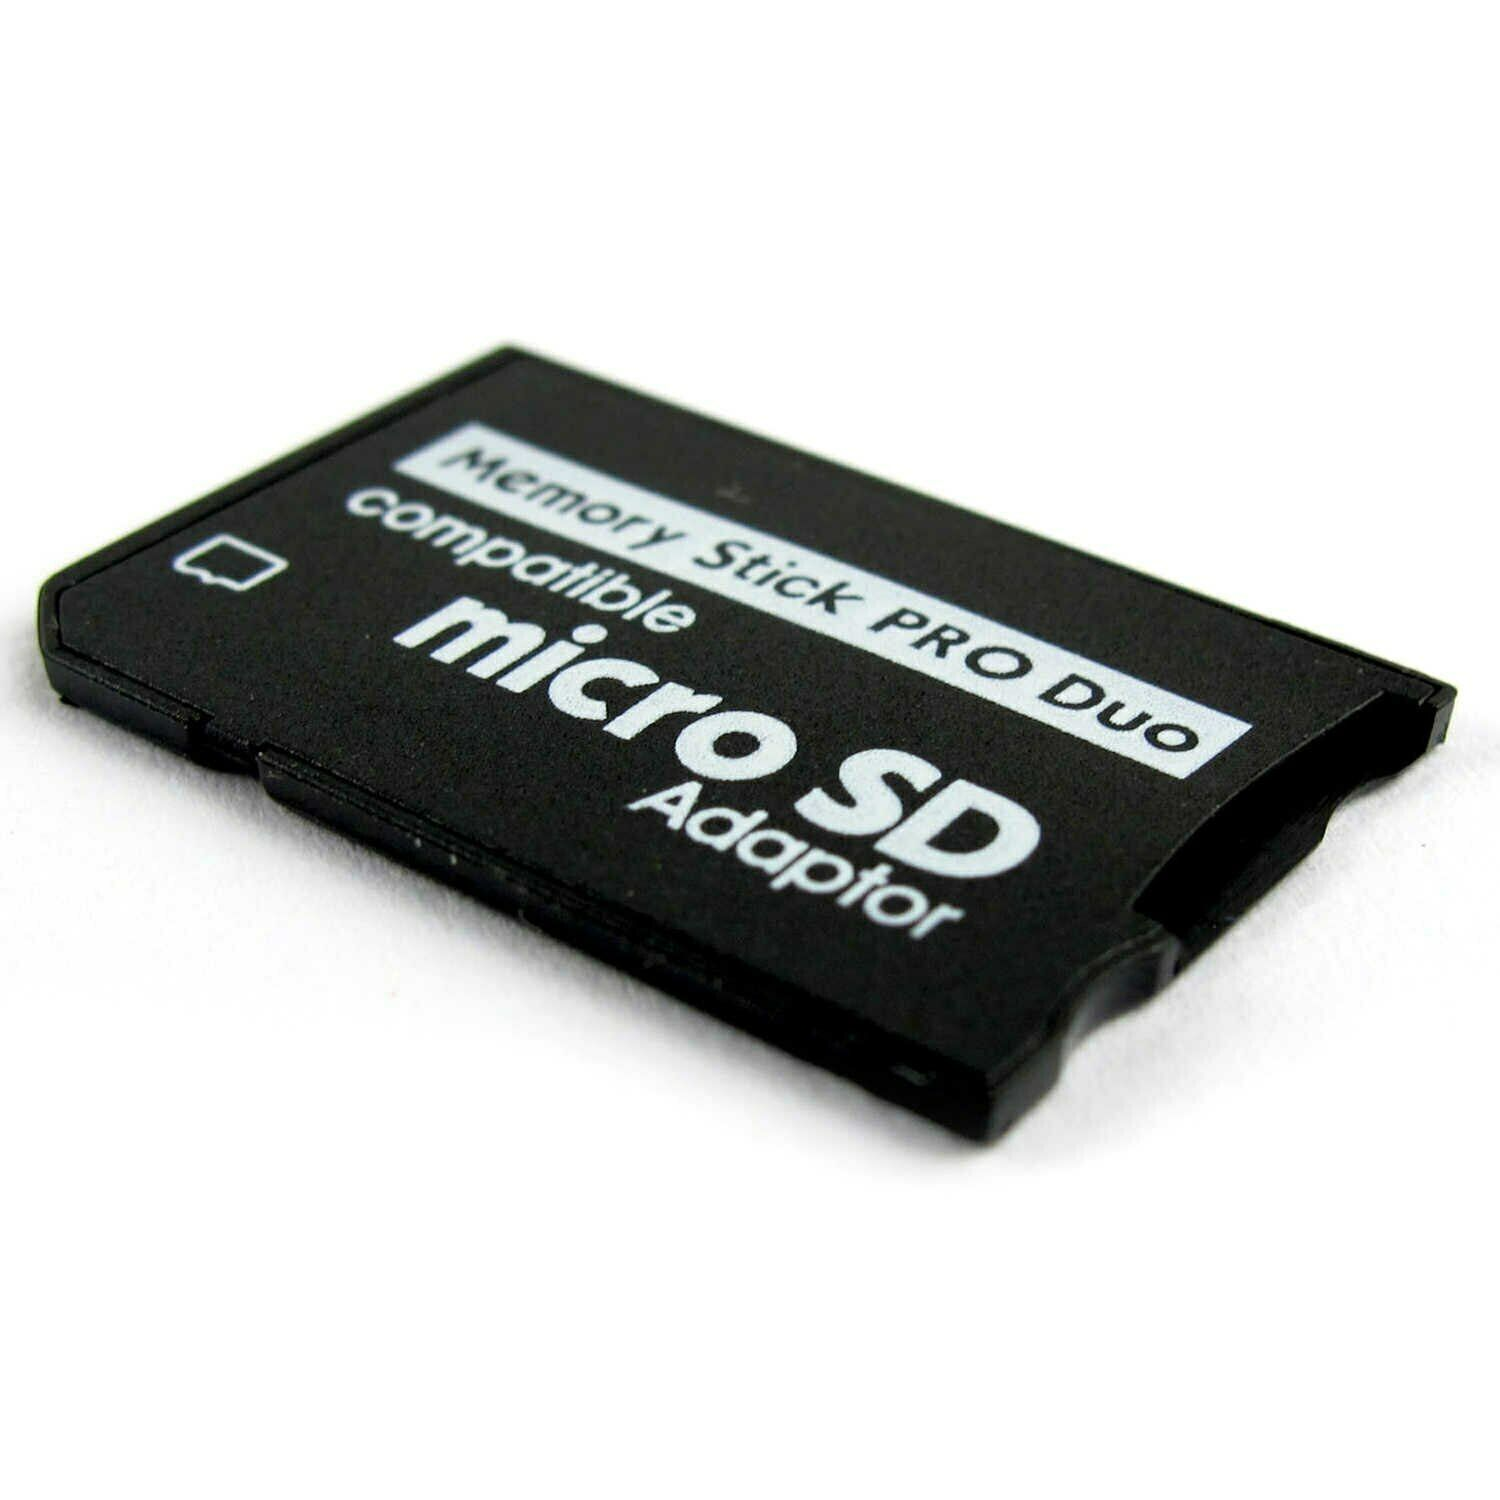 Memory Card Adapter For Sony PSP 1000 2000 3000 Micro SD to MS Pro Duo